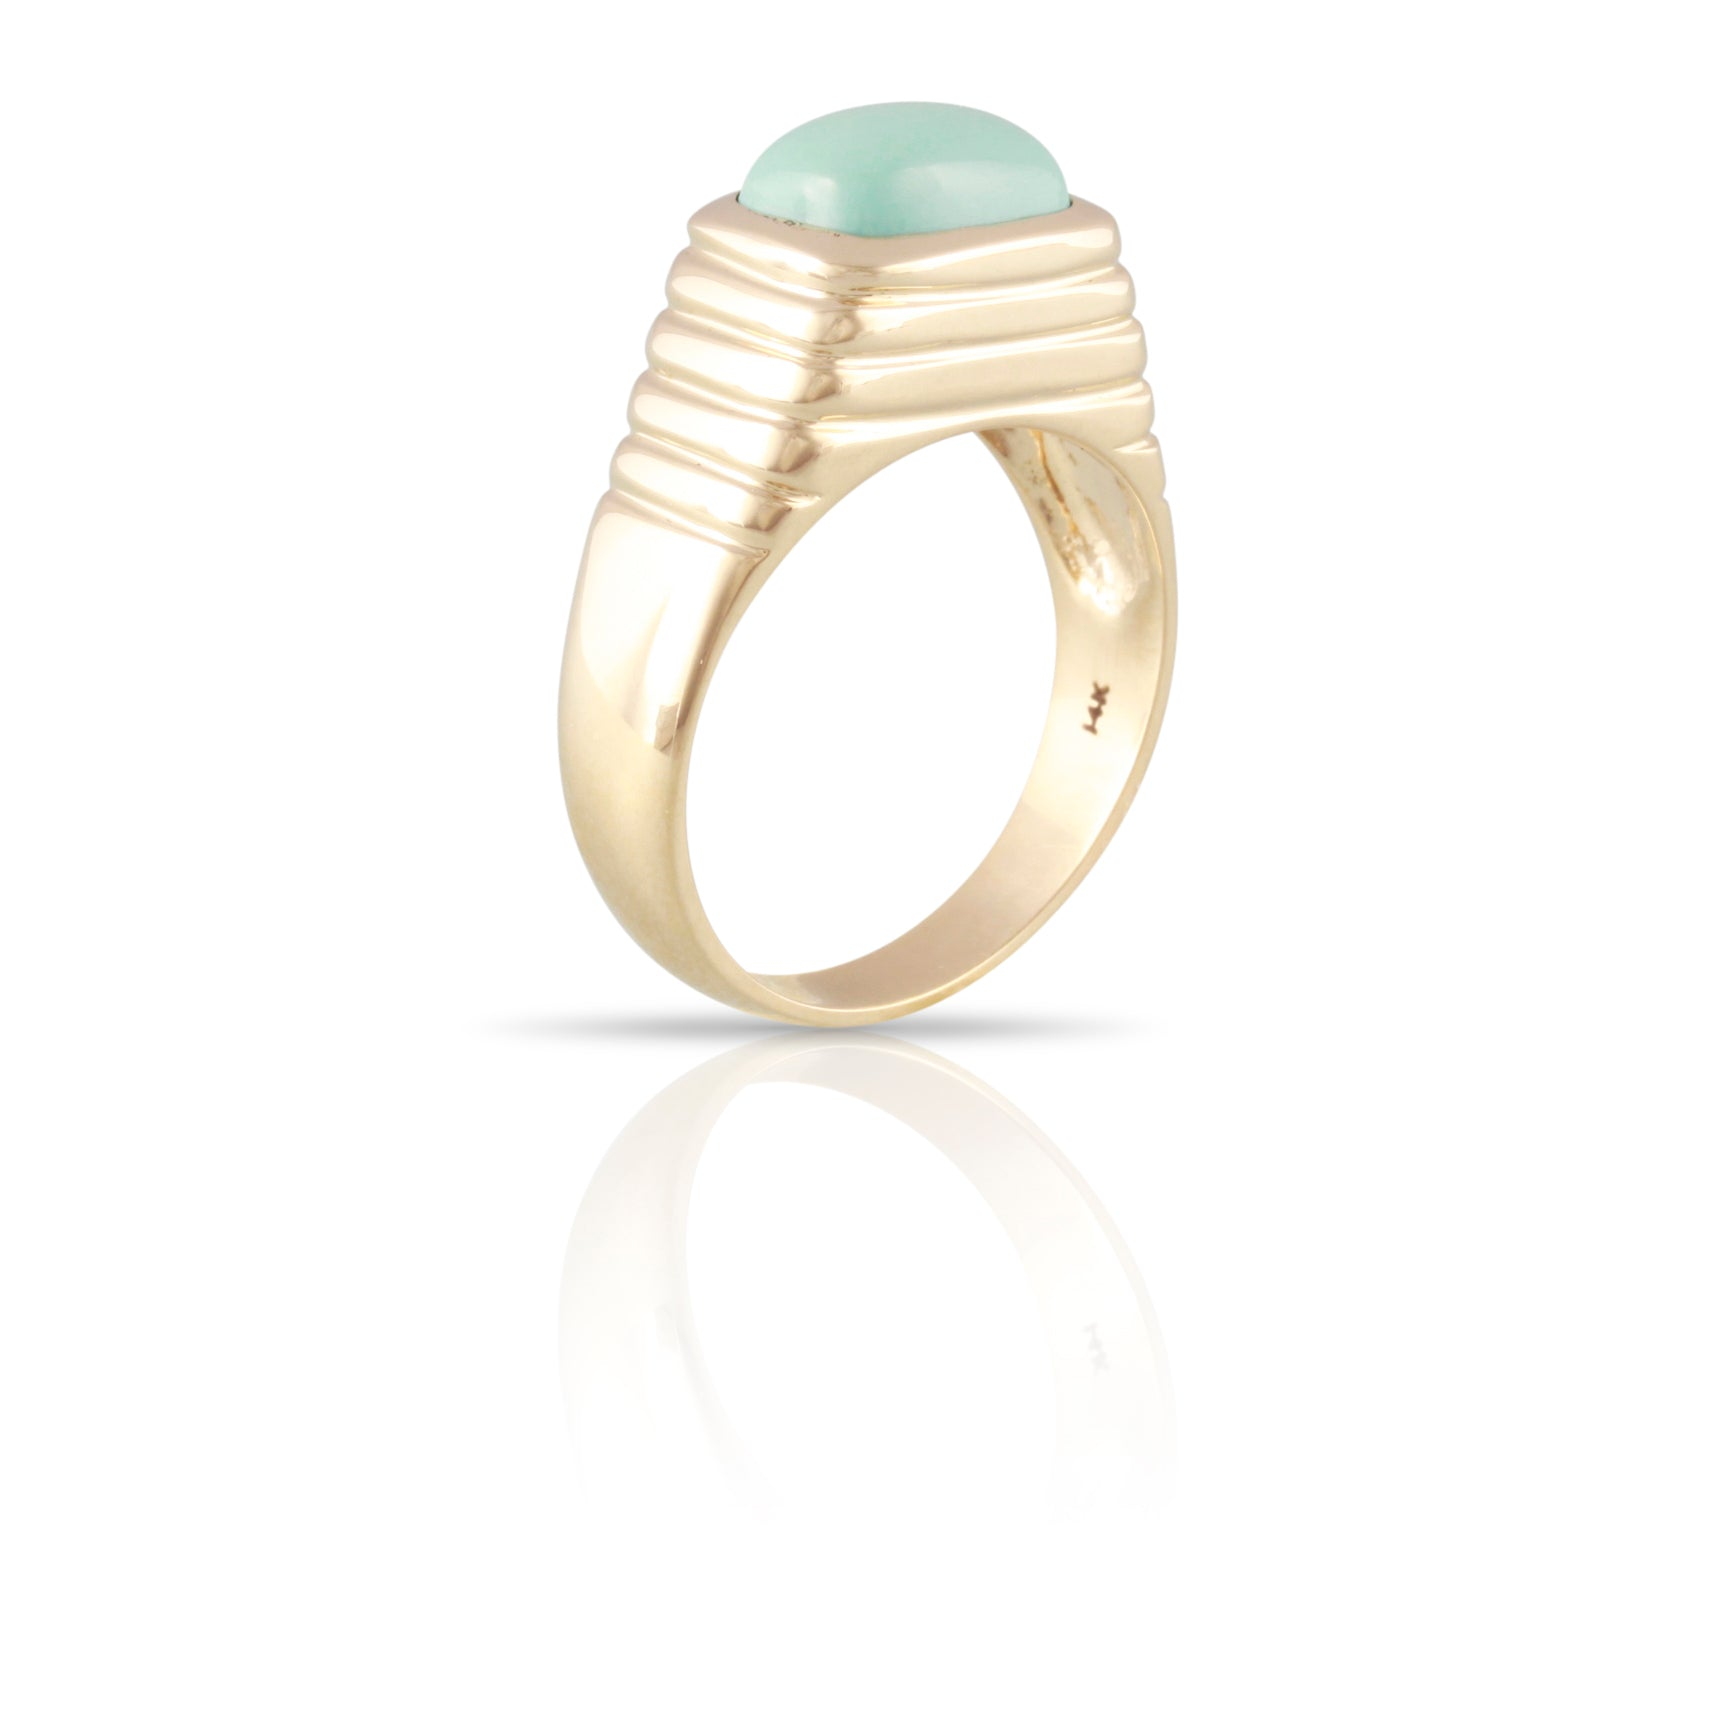 Turquoise Ring | The Nicholas